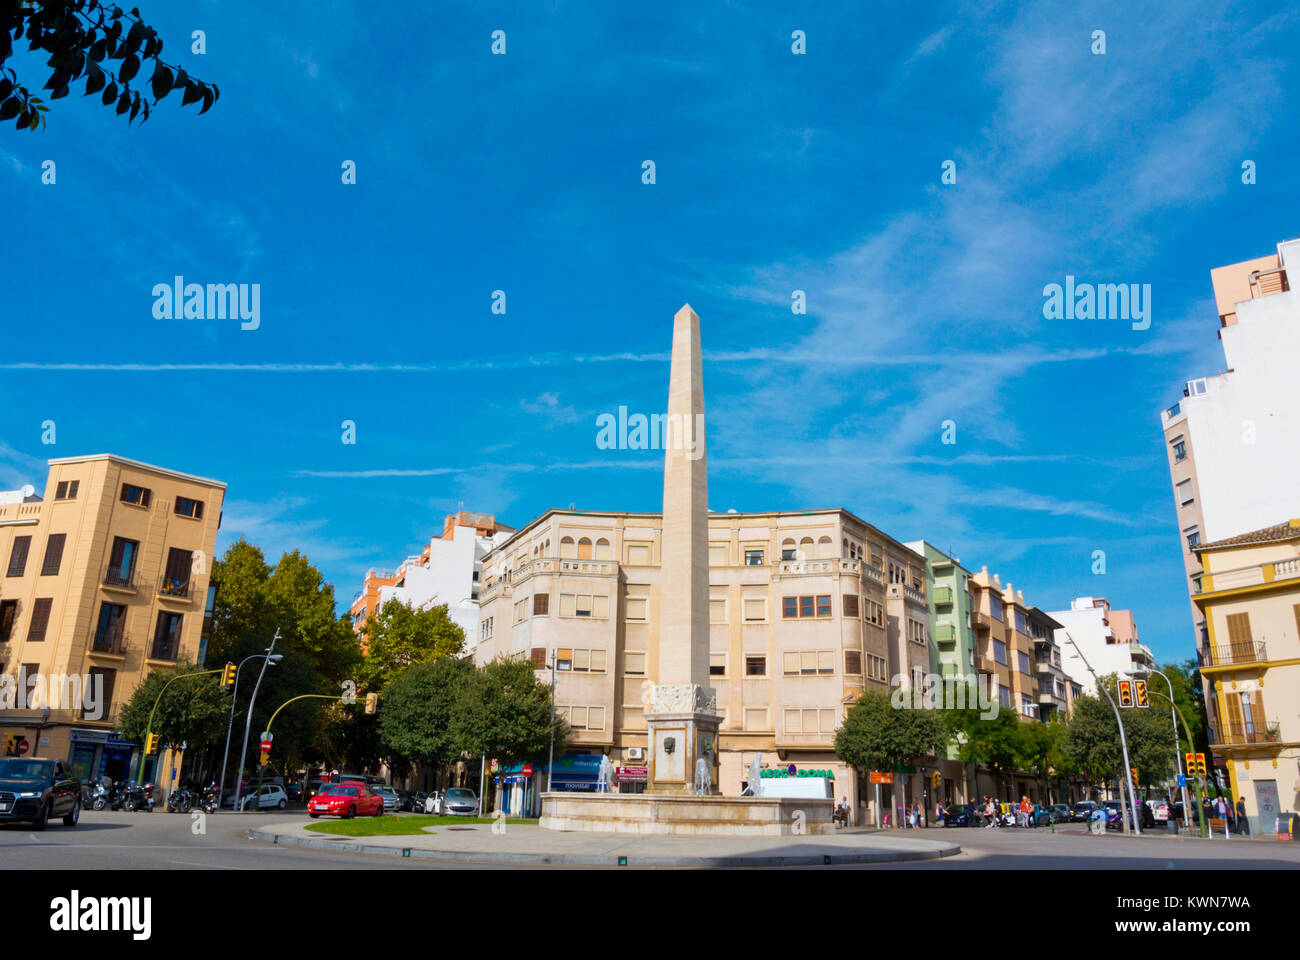 Placa del Cardenal Reig, Palma, Mallorca, Balearic islands, Spain - Stock Image